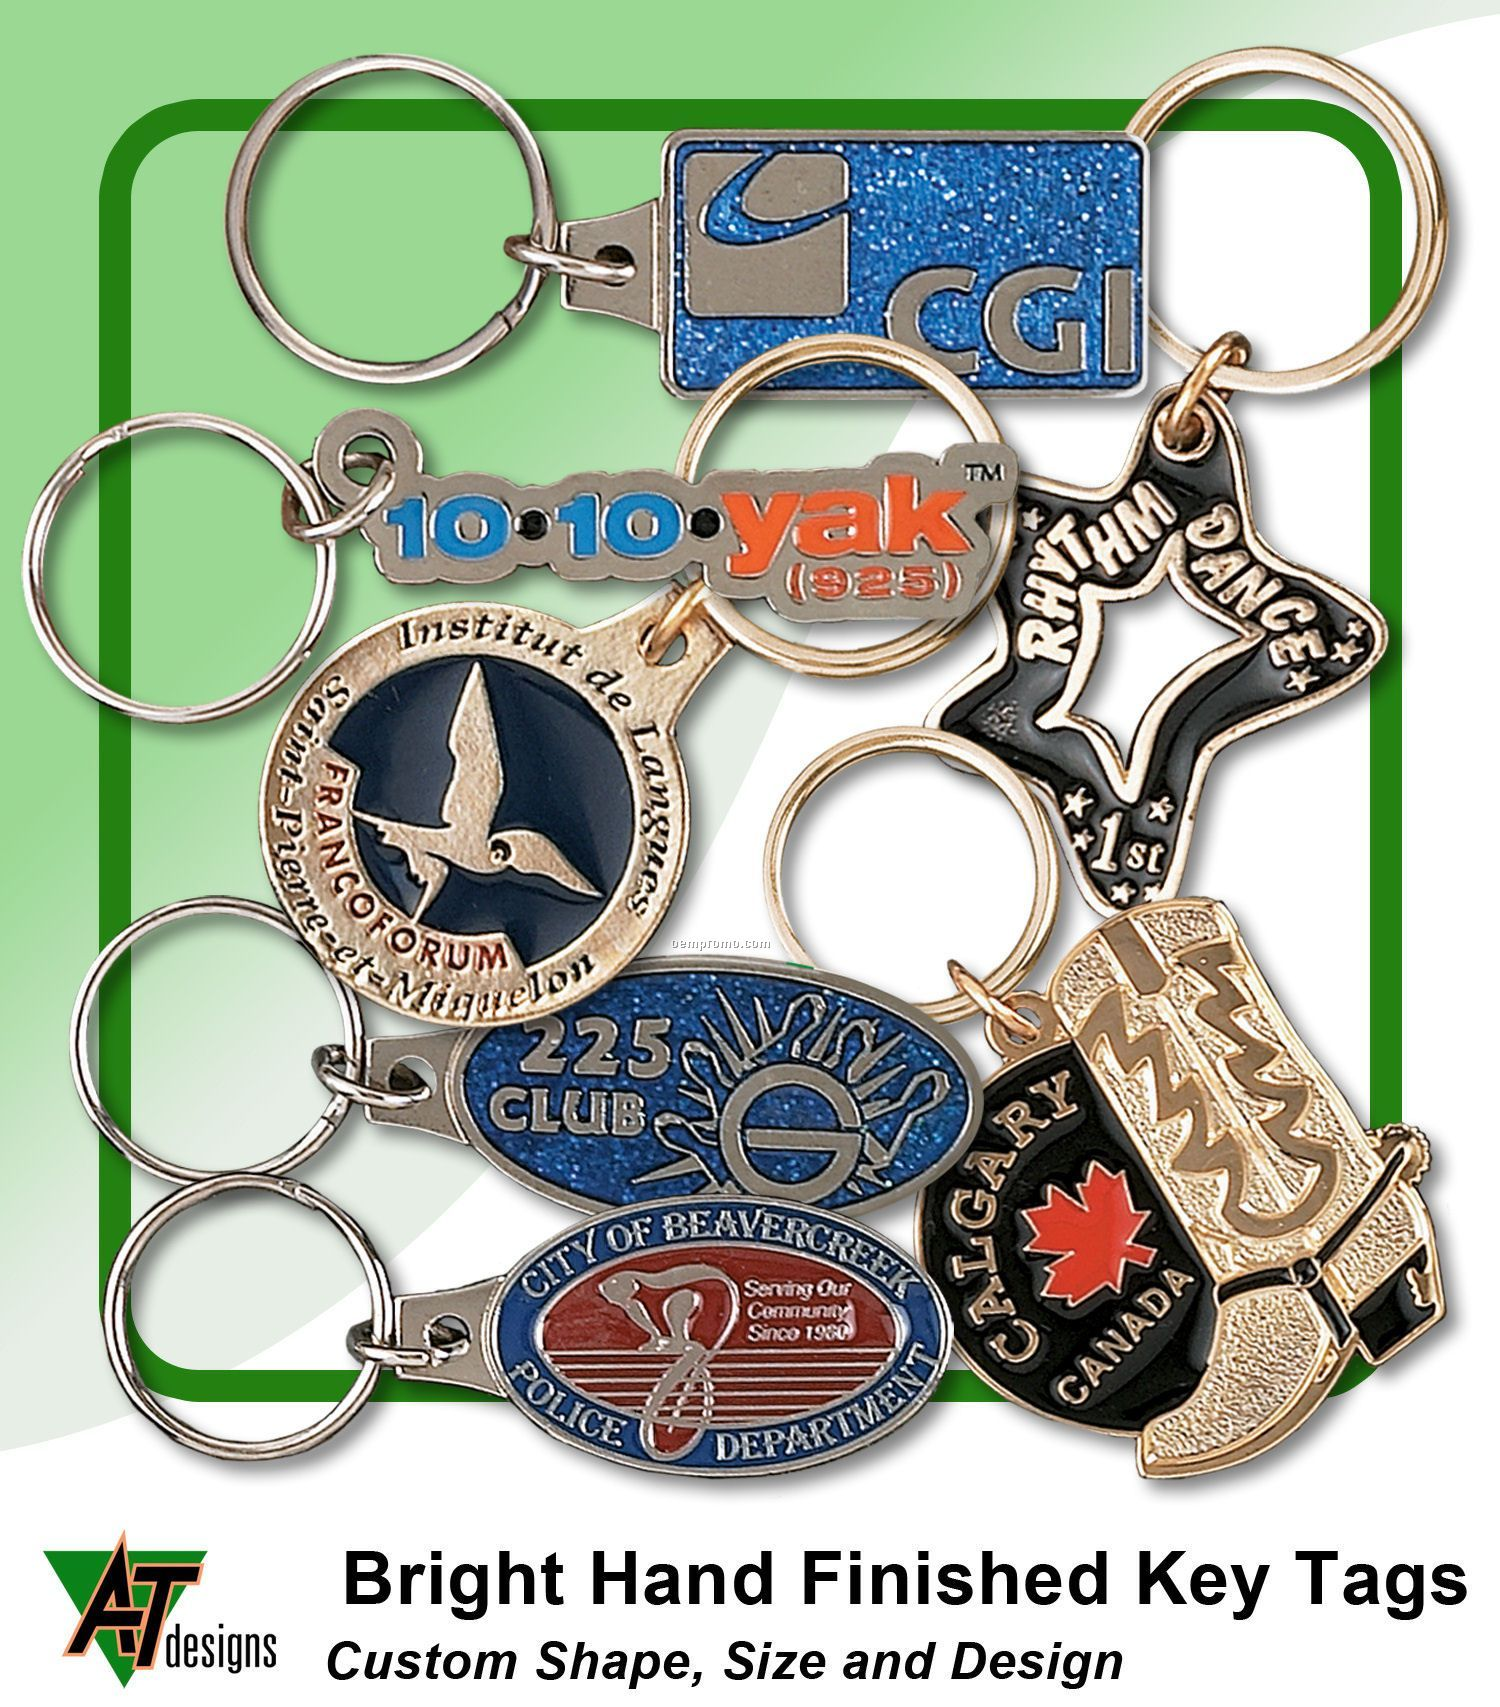 Bright Hand Finished Key Tags